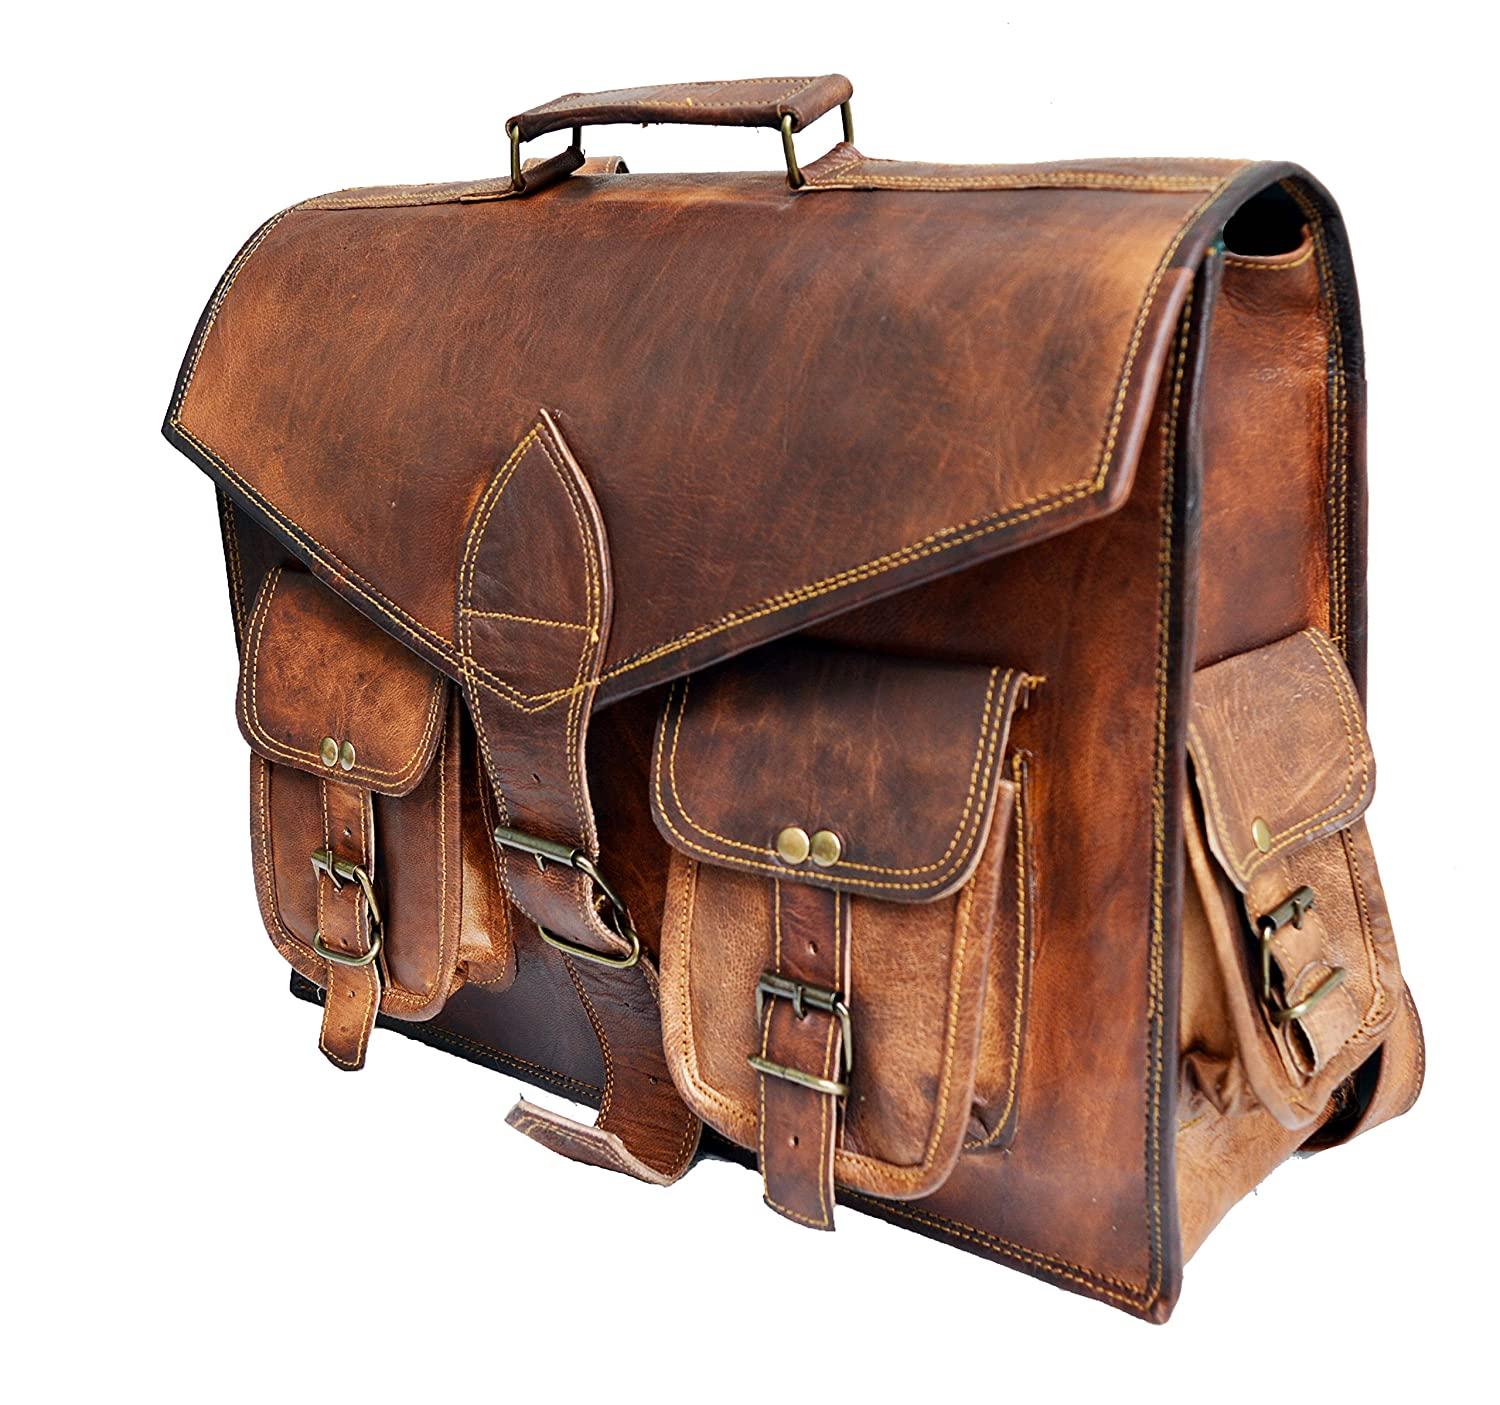 There are Vintage laptop briefcase something